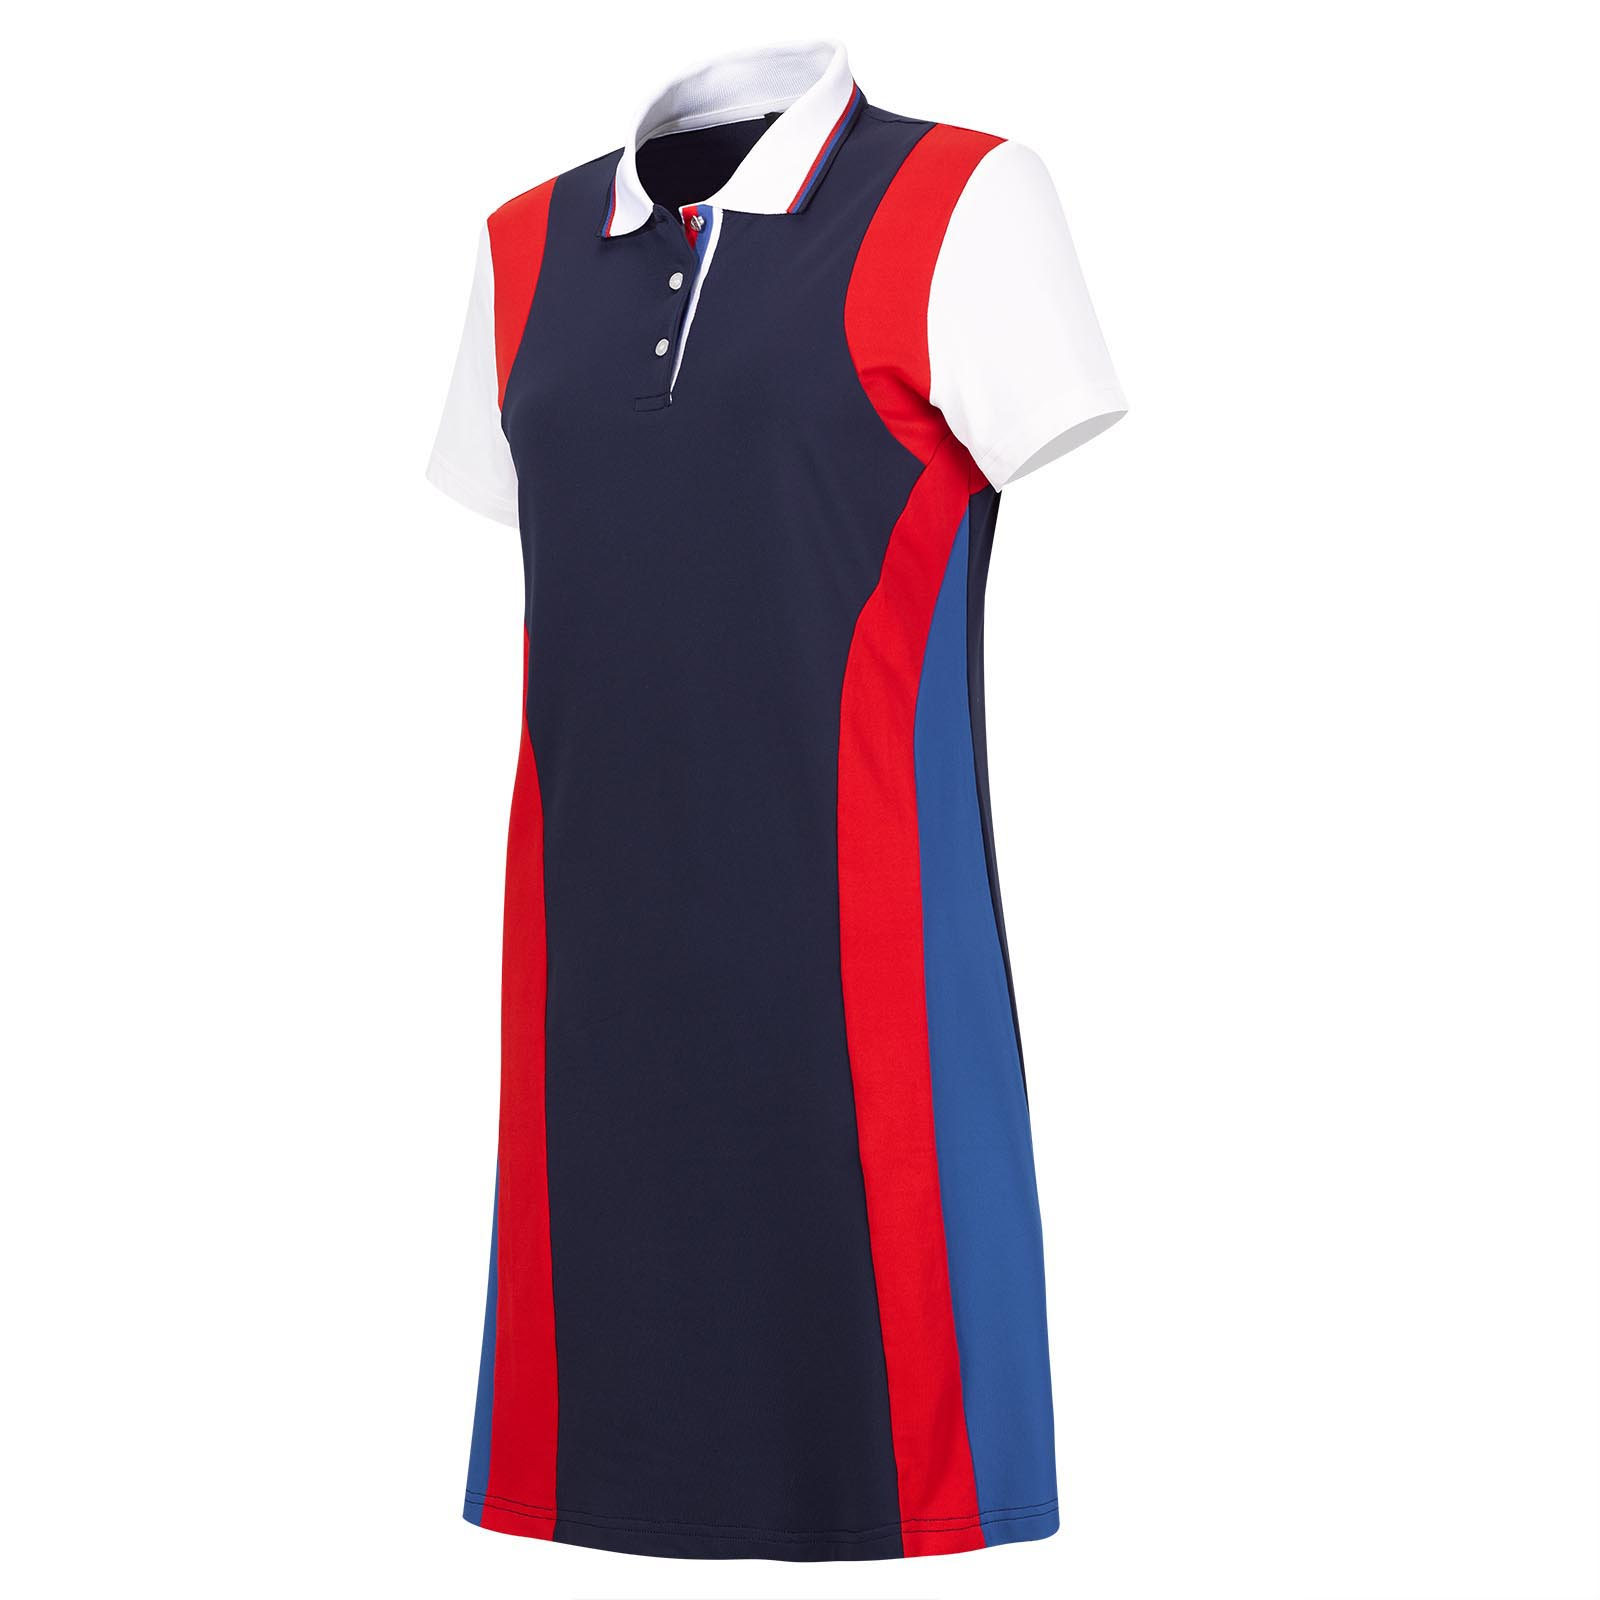 Short-sleeve ladies' functional golf apparel in retro look with Sun Protection